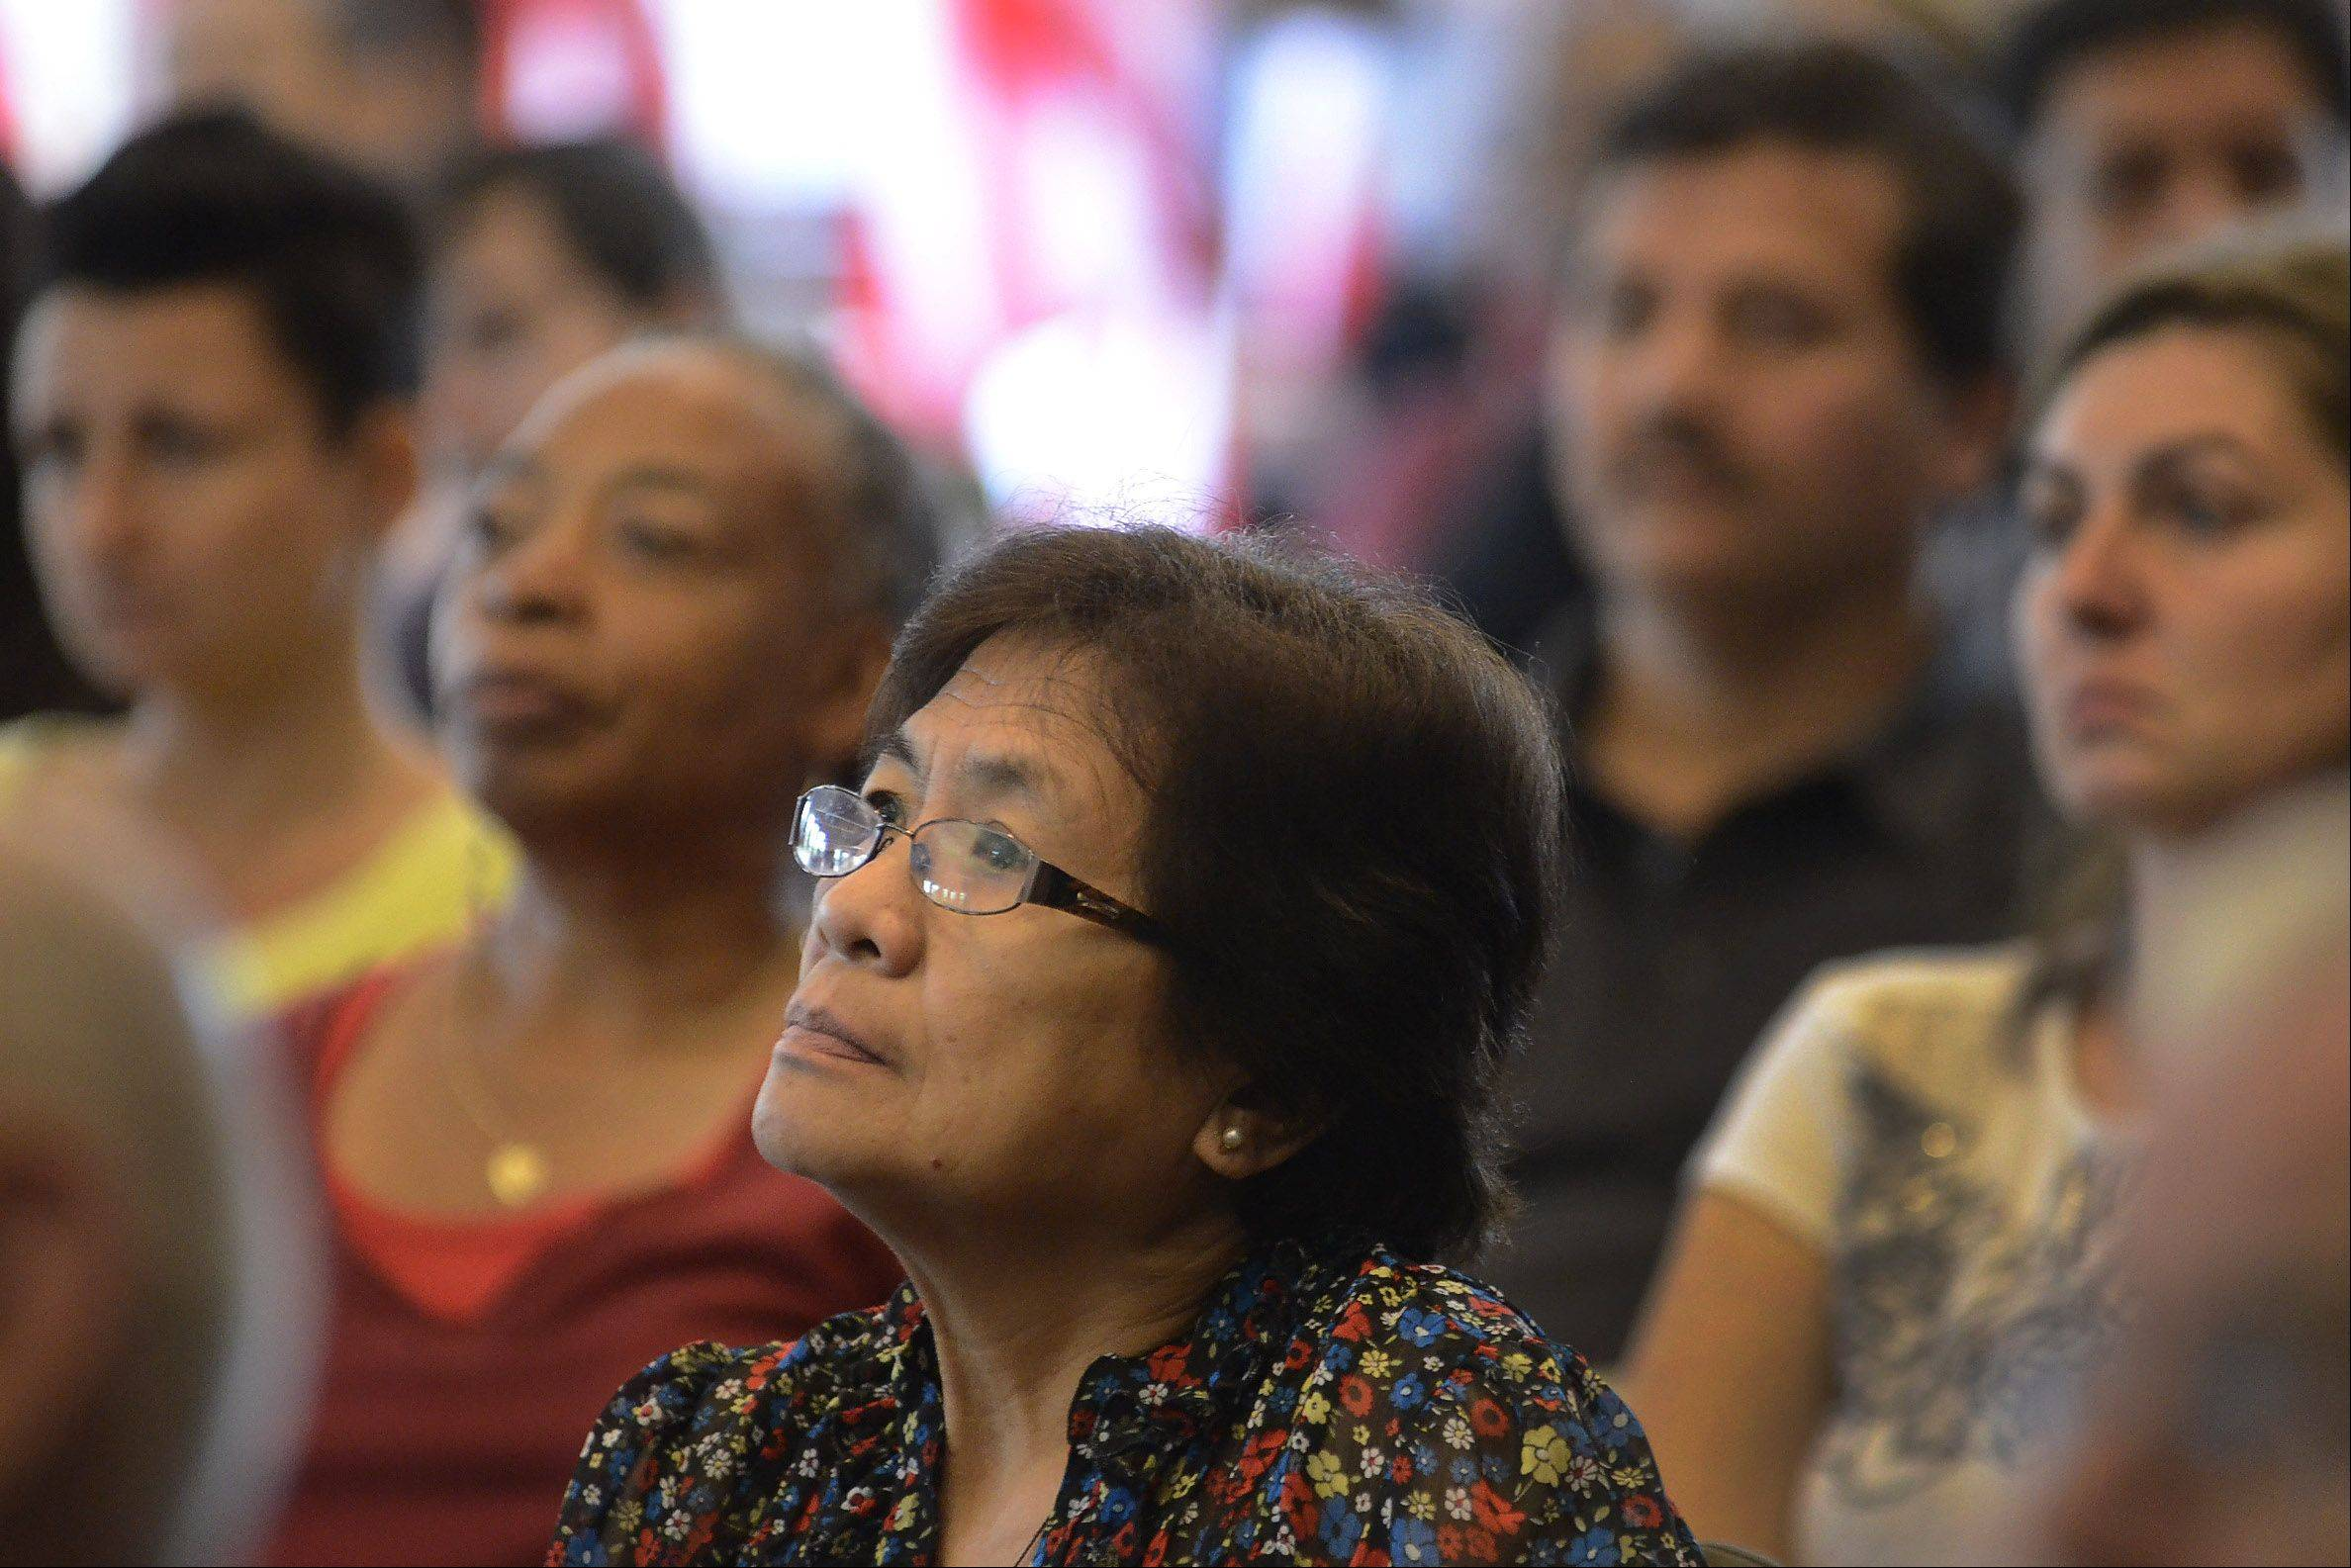 More than 70 individuals received their citizenship at a naturalization ceremony at the Schaumburg Township District Library Friday.